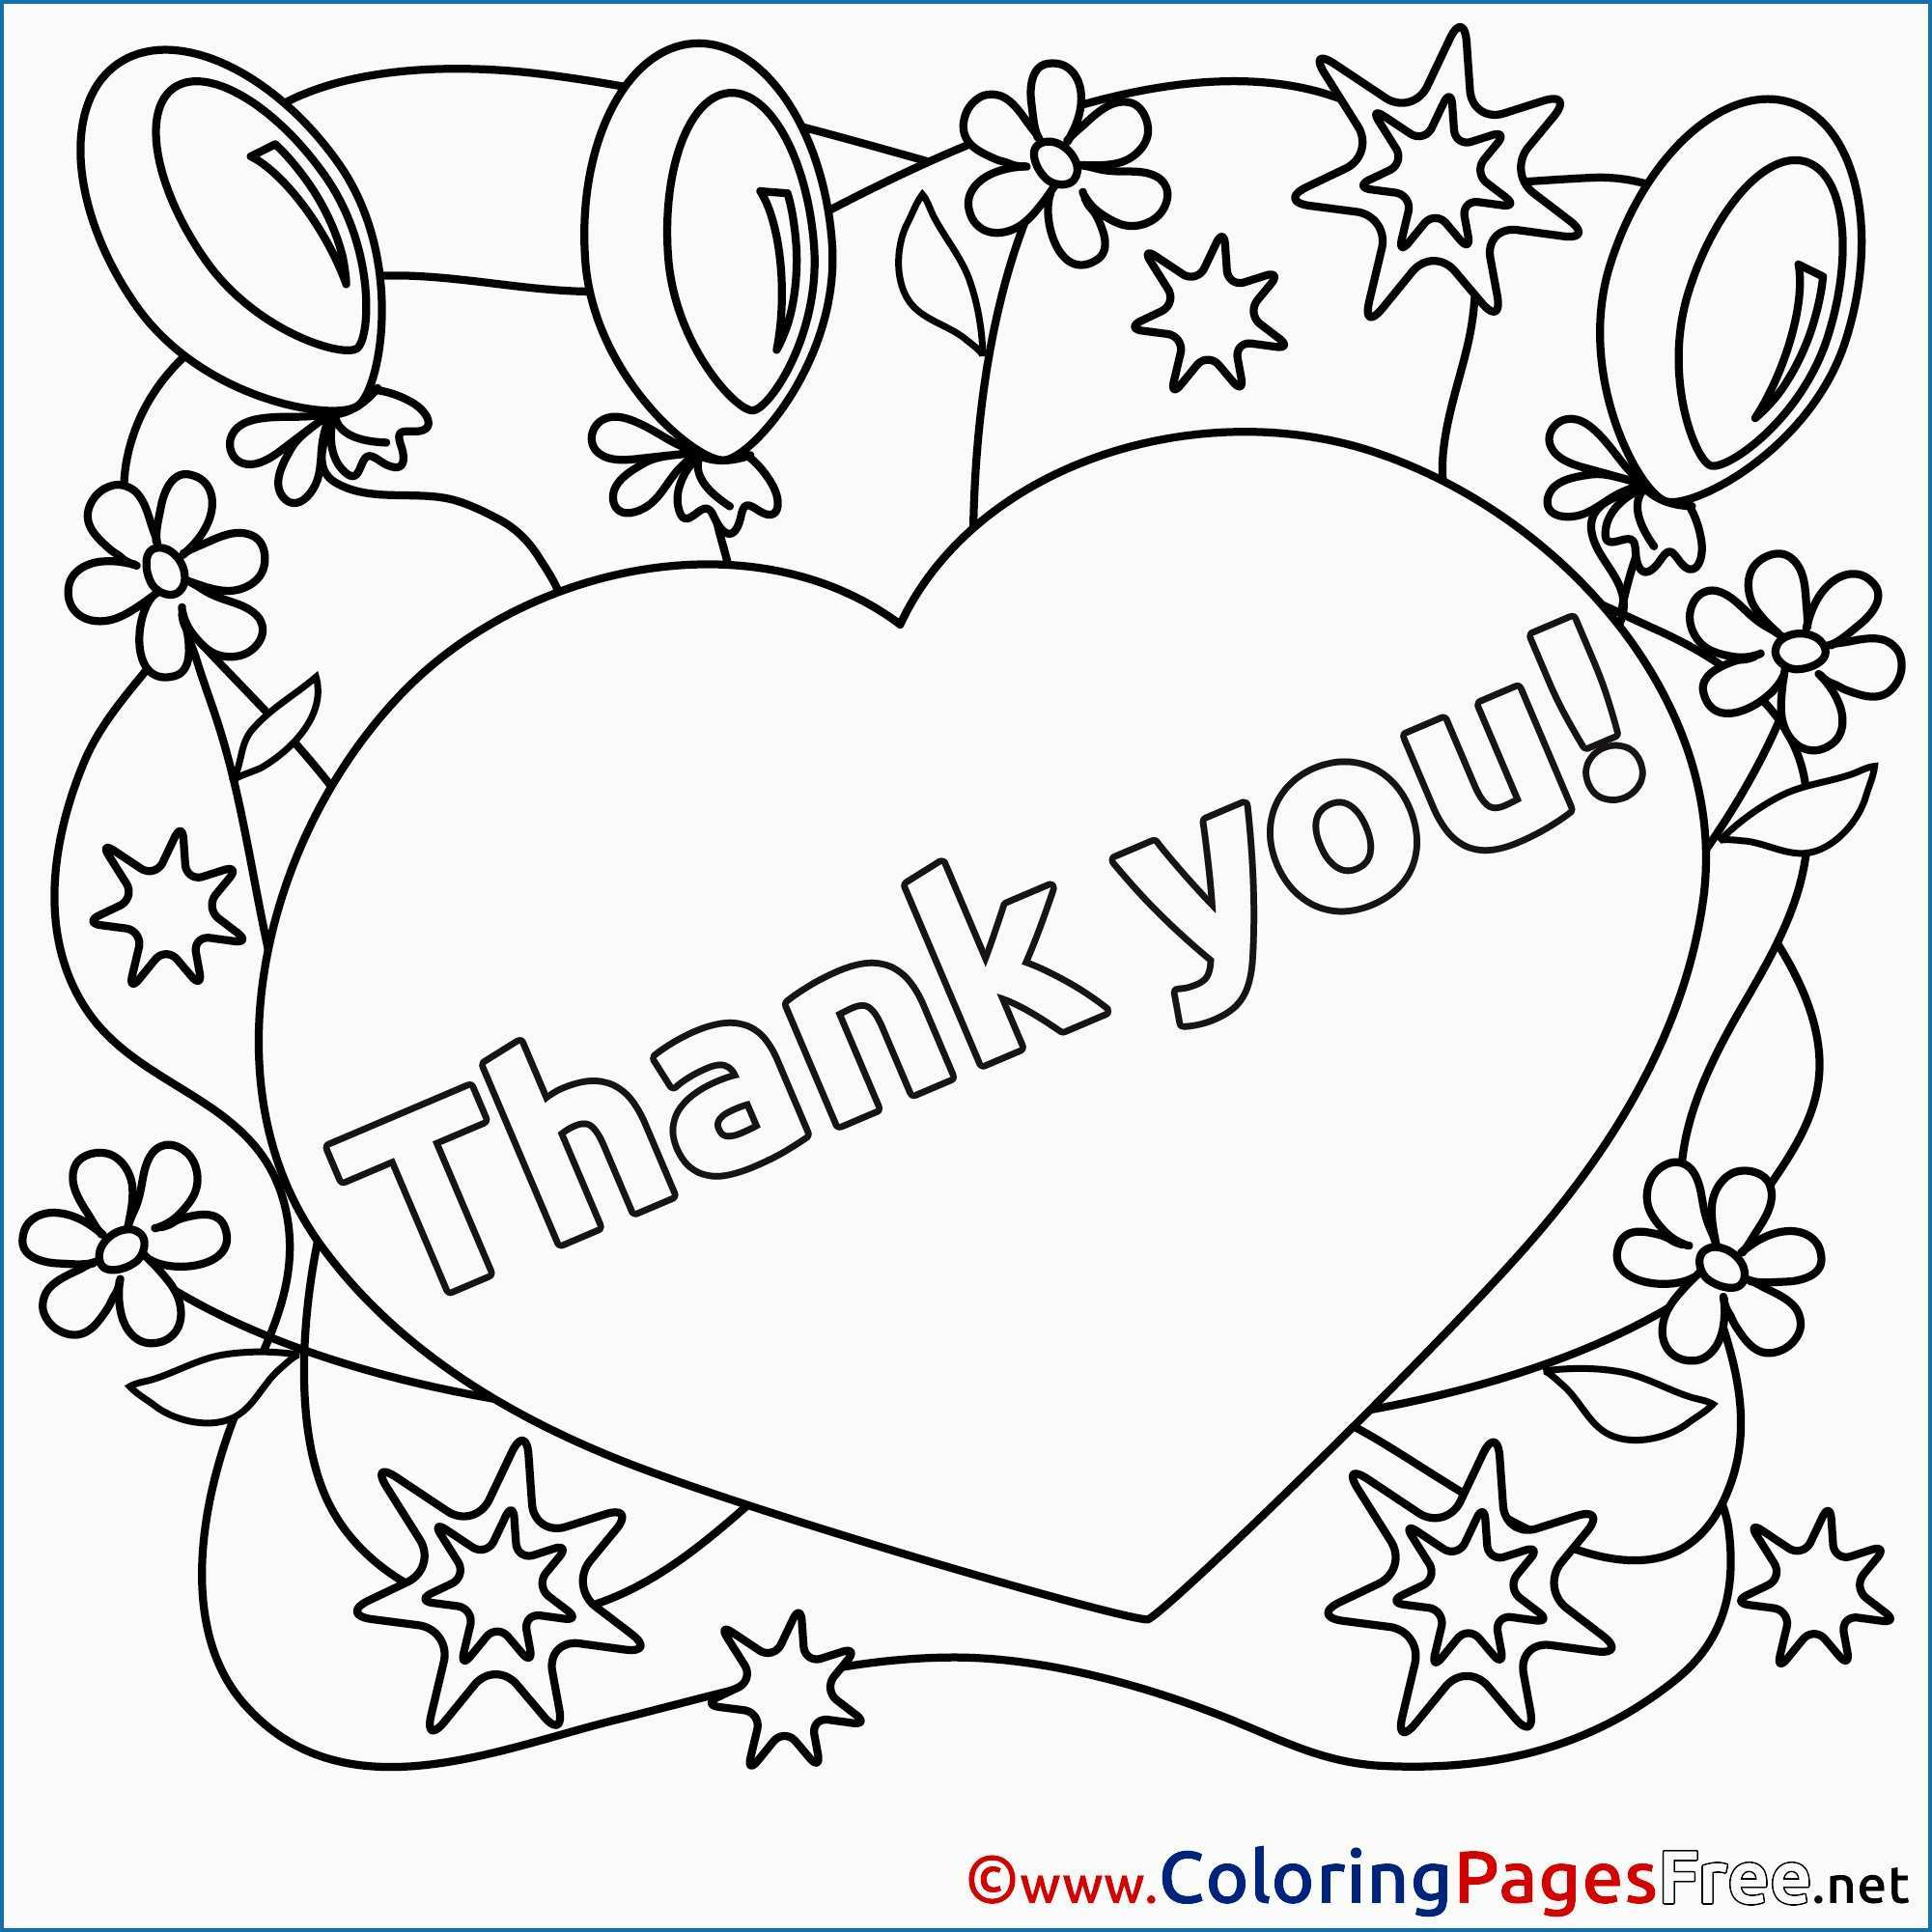 Thank You Coloring Pages Thank You Coloring Pages Fresh Heart Balloons For Kids Thank You